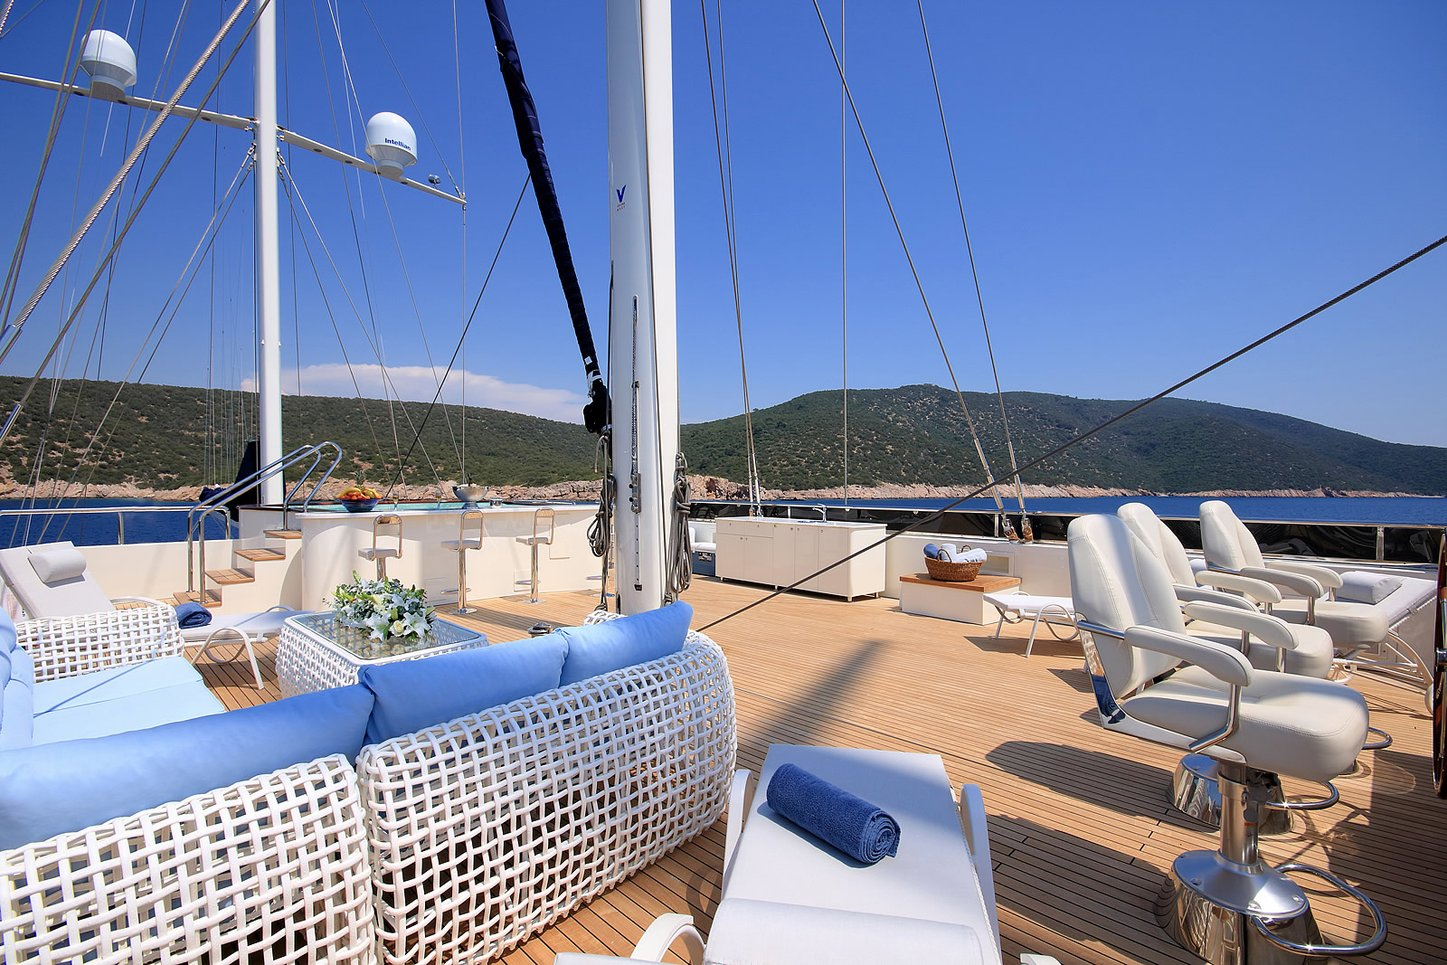 Jacuzzi, sunbeds and seating on flybridge aboard superyacht MEIRA